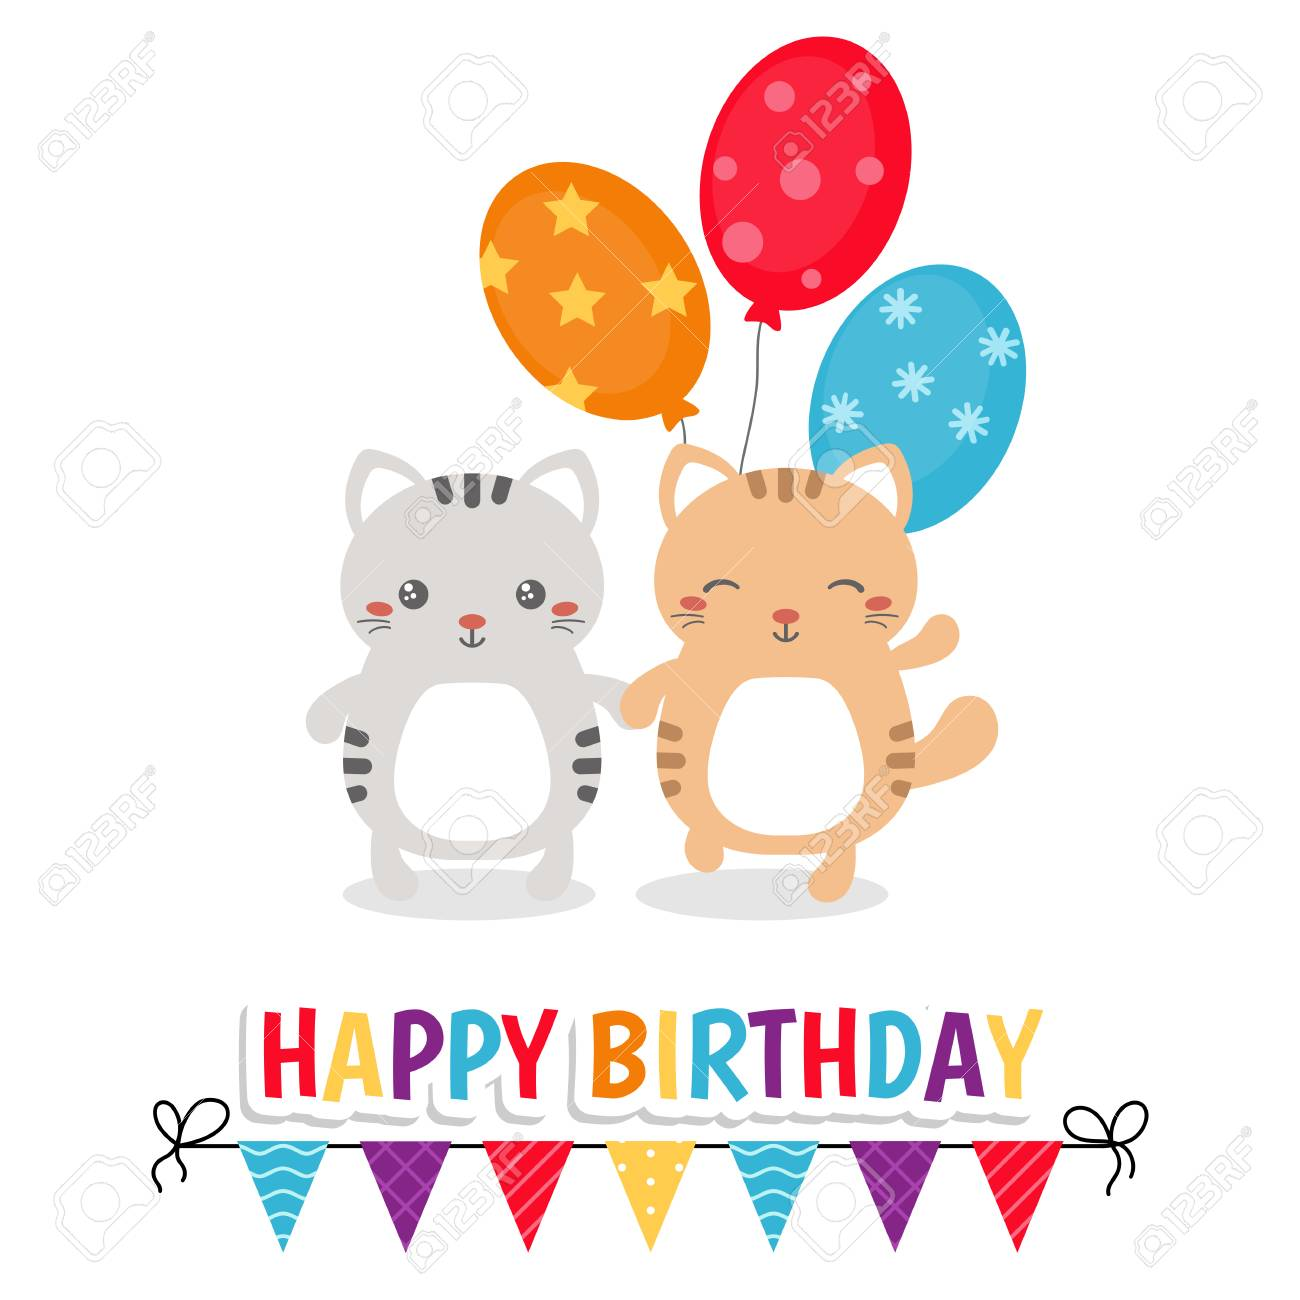 Happy Birthday Greeting Card With Cats And Balloons Stock Vector